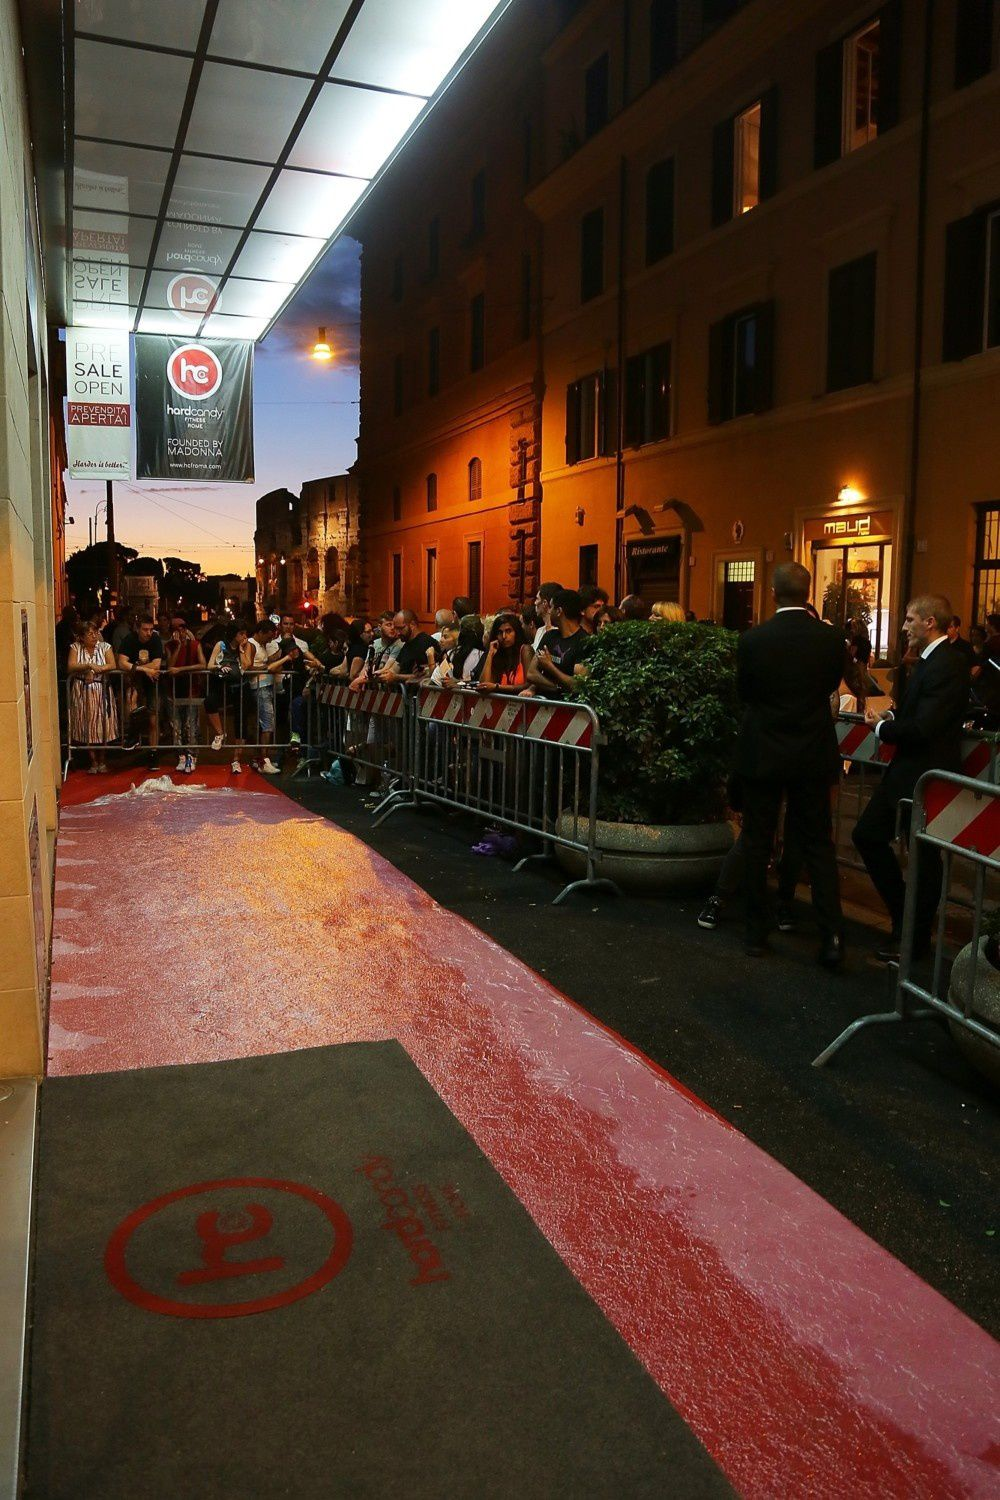 http://a133.idata.over-blog.com/5/47/08/55/2013-dossier-4/20130821-pictures-madonna-hard-candy-fitness-center-rome-09.jpg